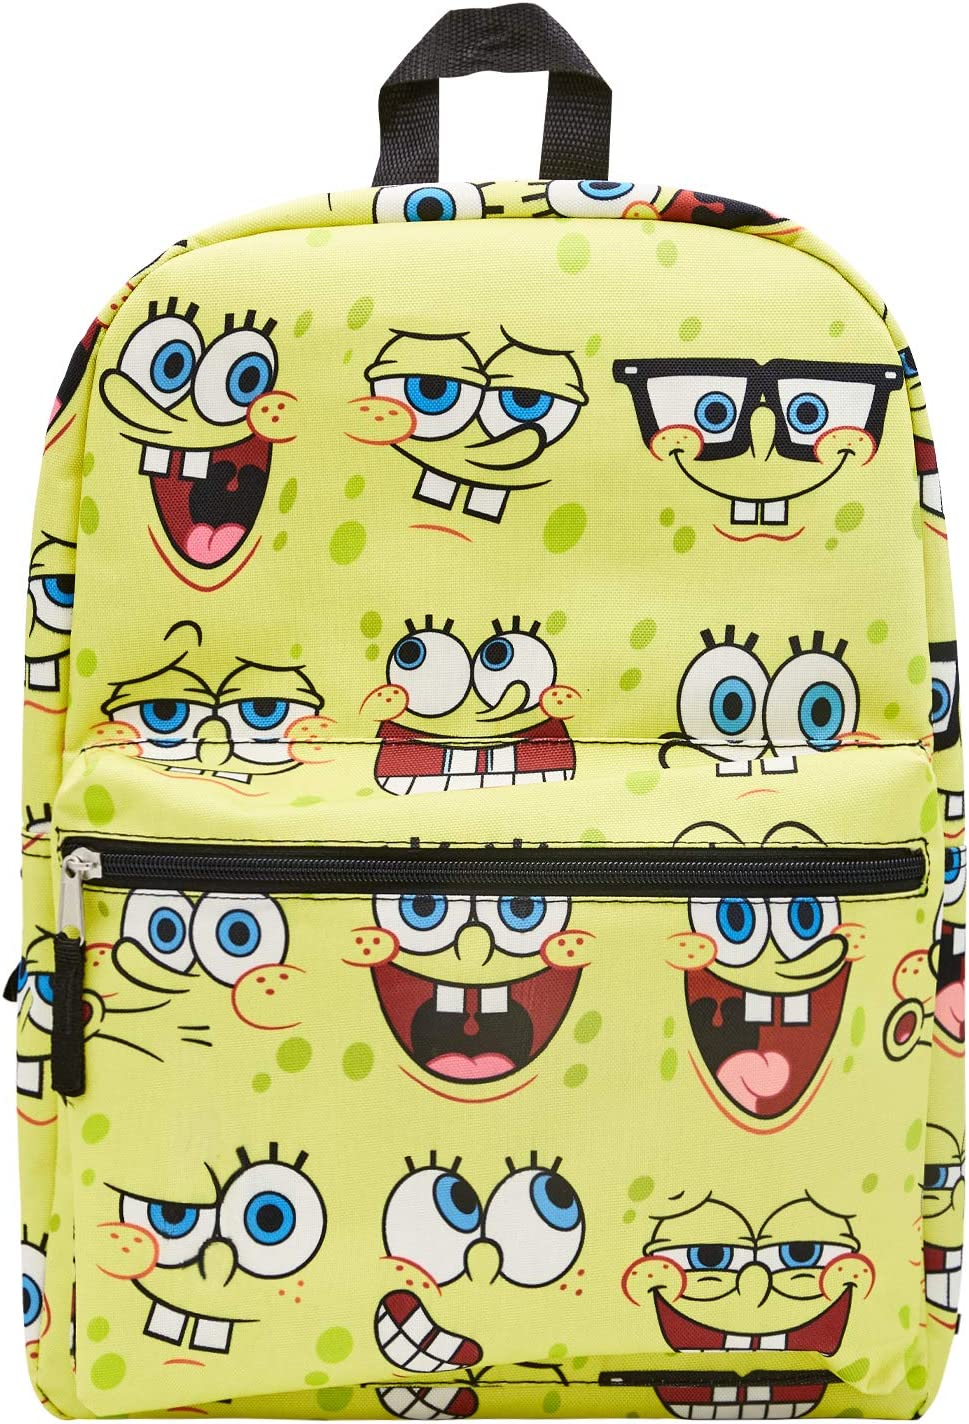 Spongebob Squarepants Allover Print - Backpack Don't miss the campaign SALENEW very popular Squidw